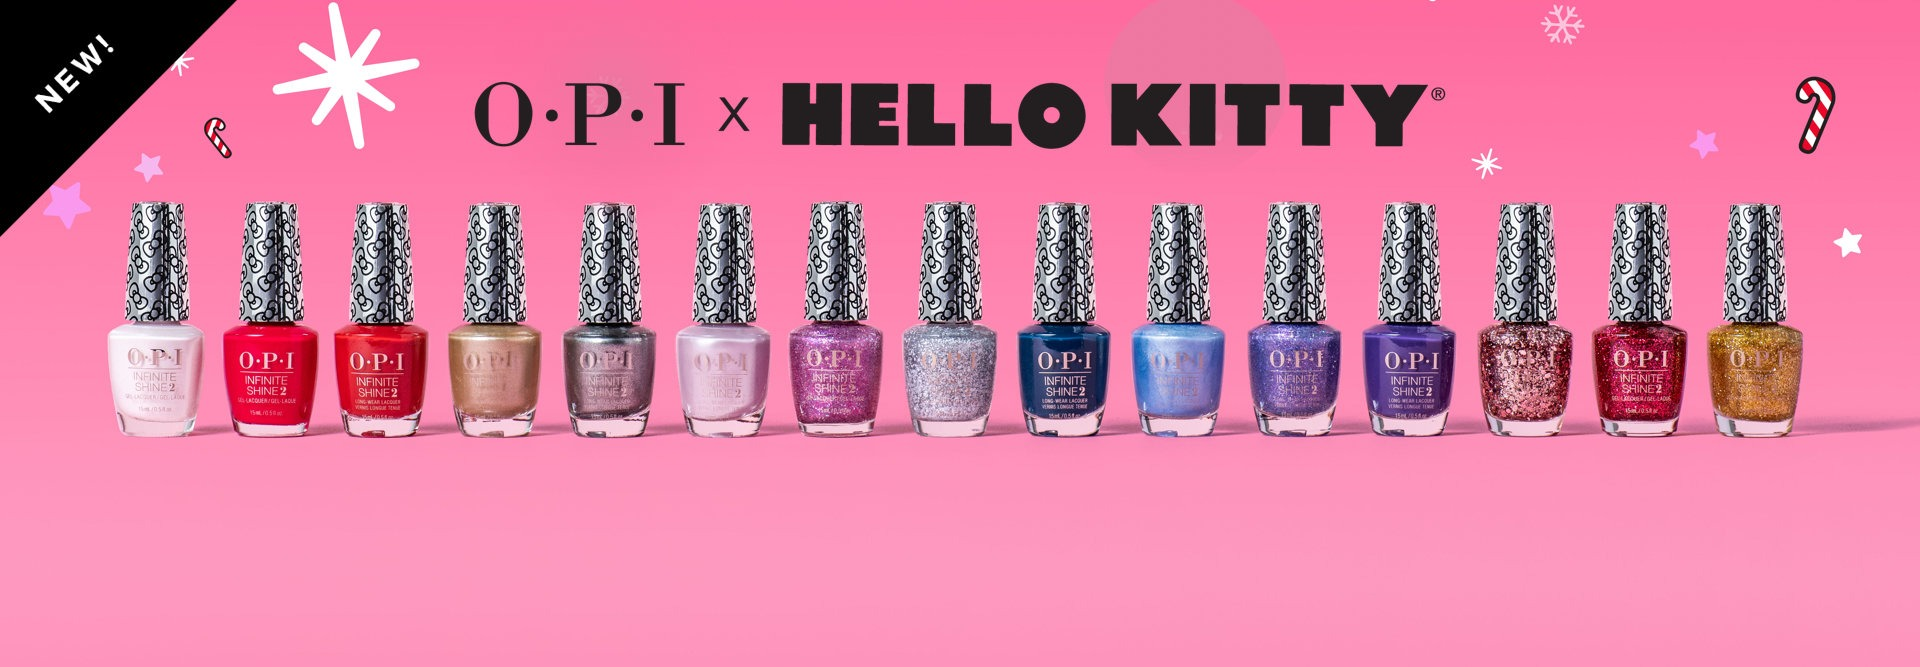 Shop the OPI x Hello Kitty Collection